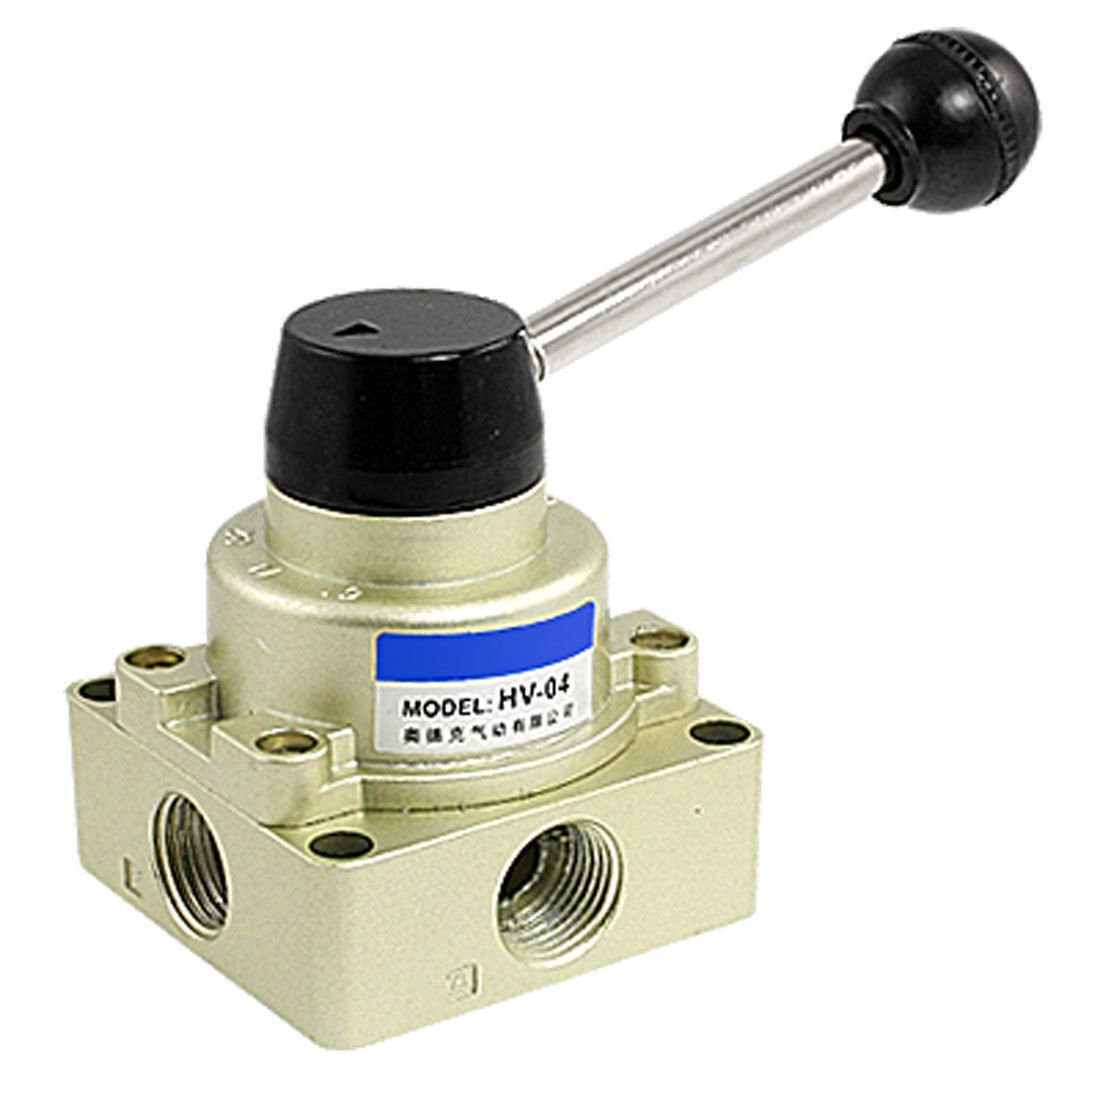 HV-04 Air Flow Control 3 Positions 4 Ways Hand Rotary Lever Valve